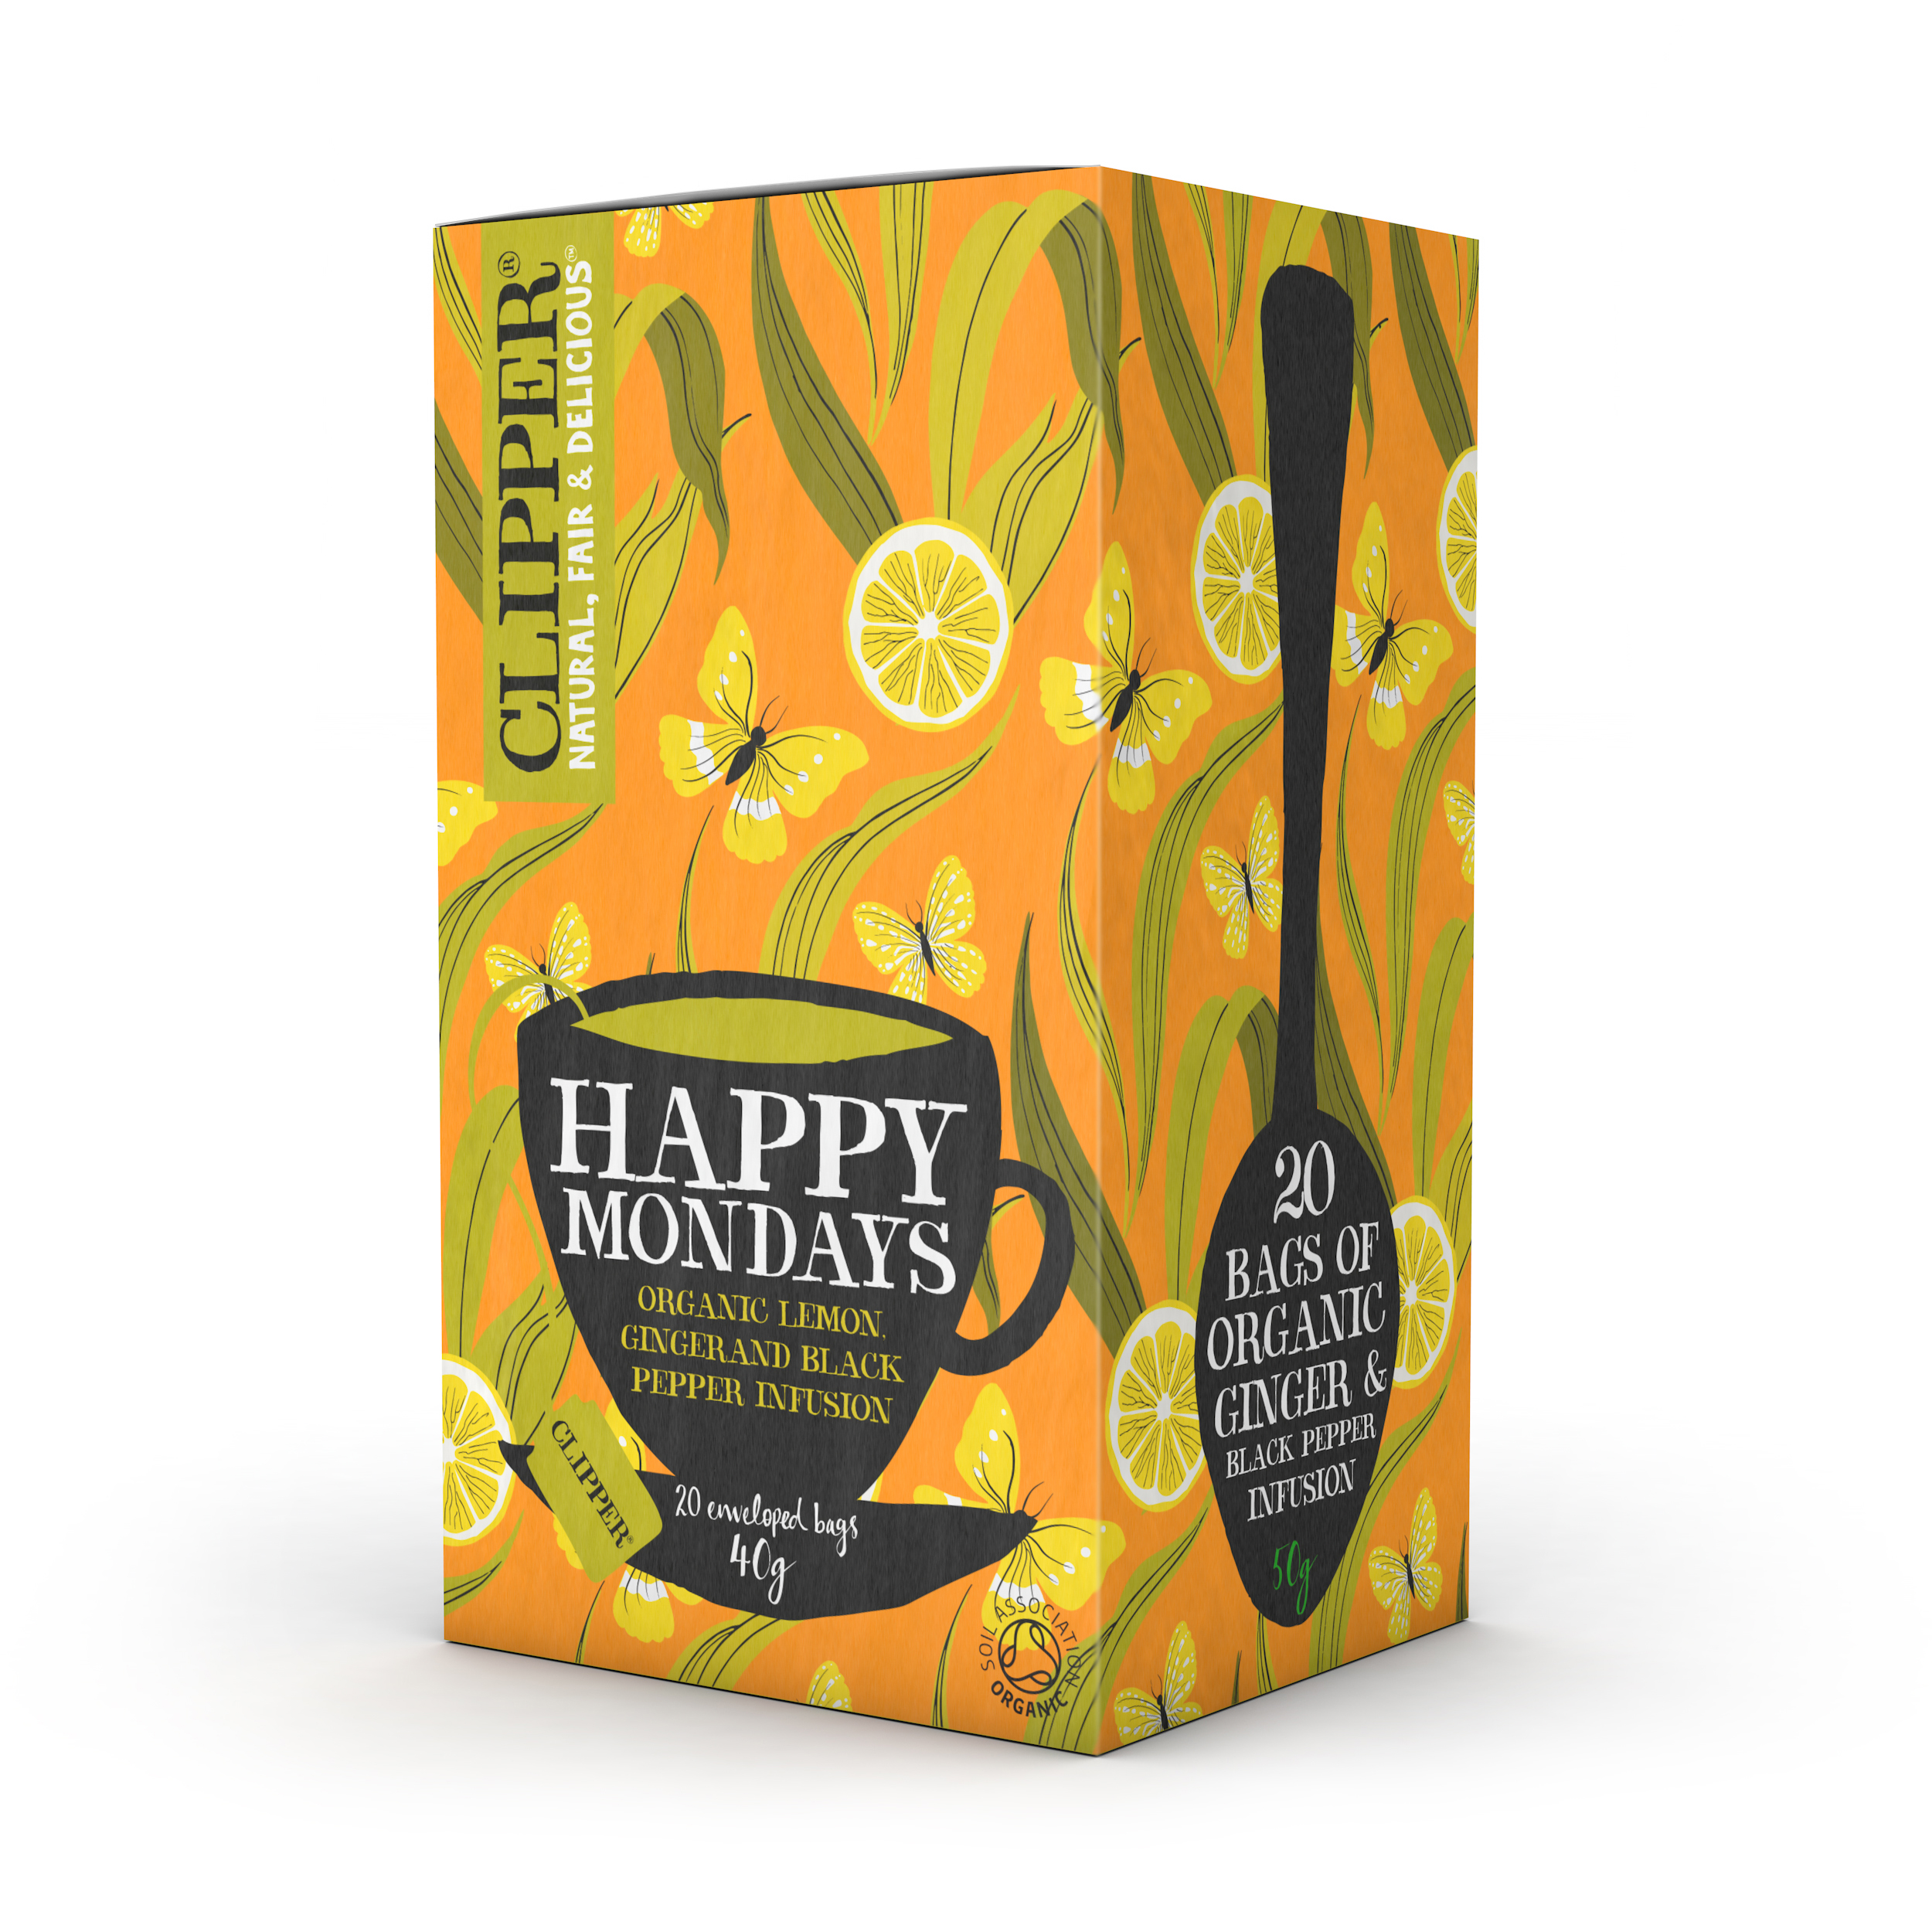 Tea bags Clipper Organic Individually Enveloped Tea Bags Happy Monday Ref 0403348 Pack 20